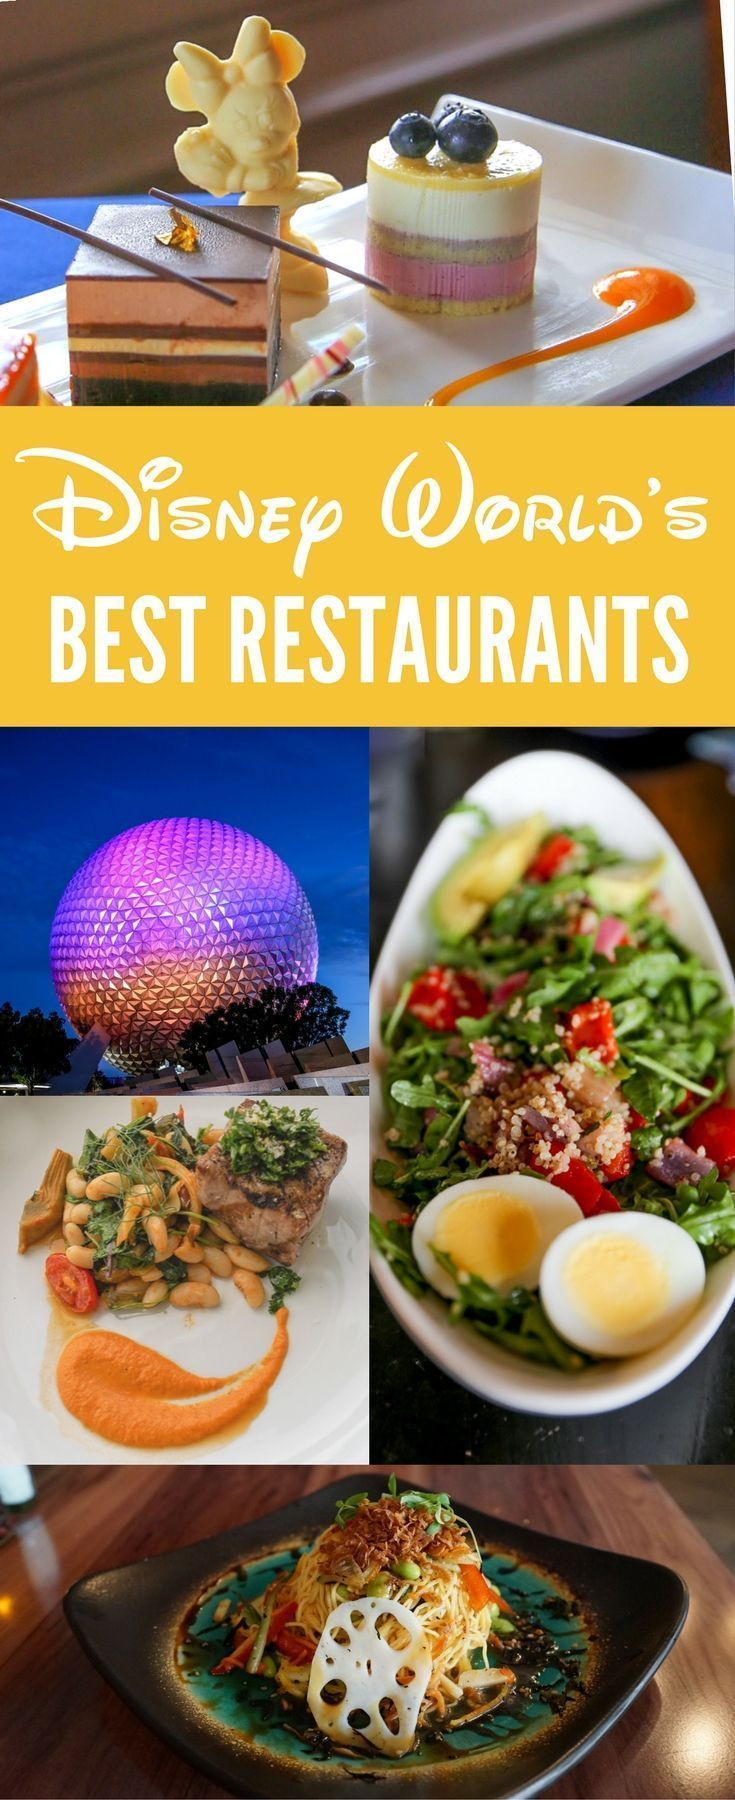 A complete list of the best Disney restaurants for foodies and those who wish to avoid junk food on their Disney World vacation.